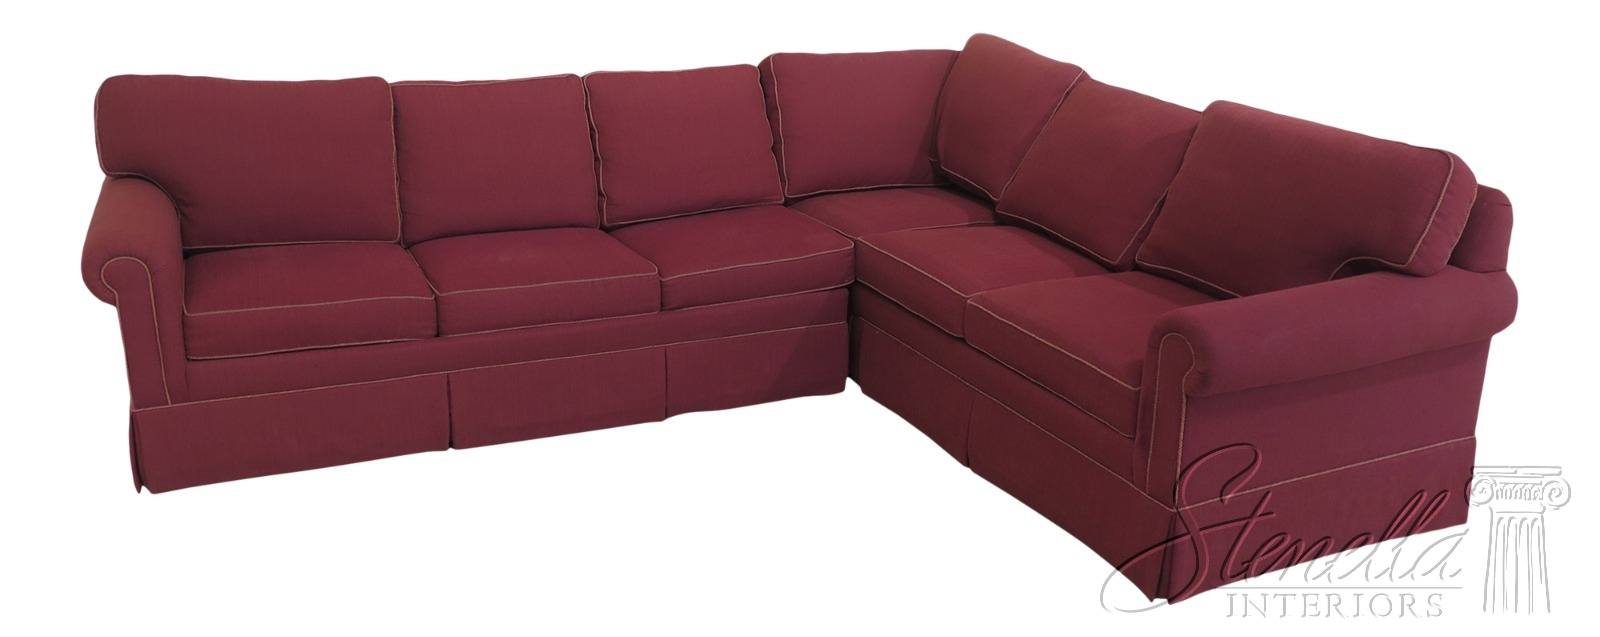 Red Upholstered Sectional Sleeper Sofa